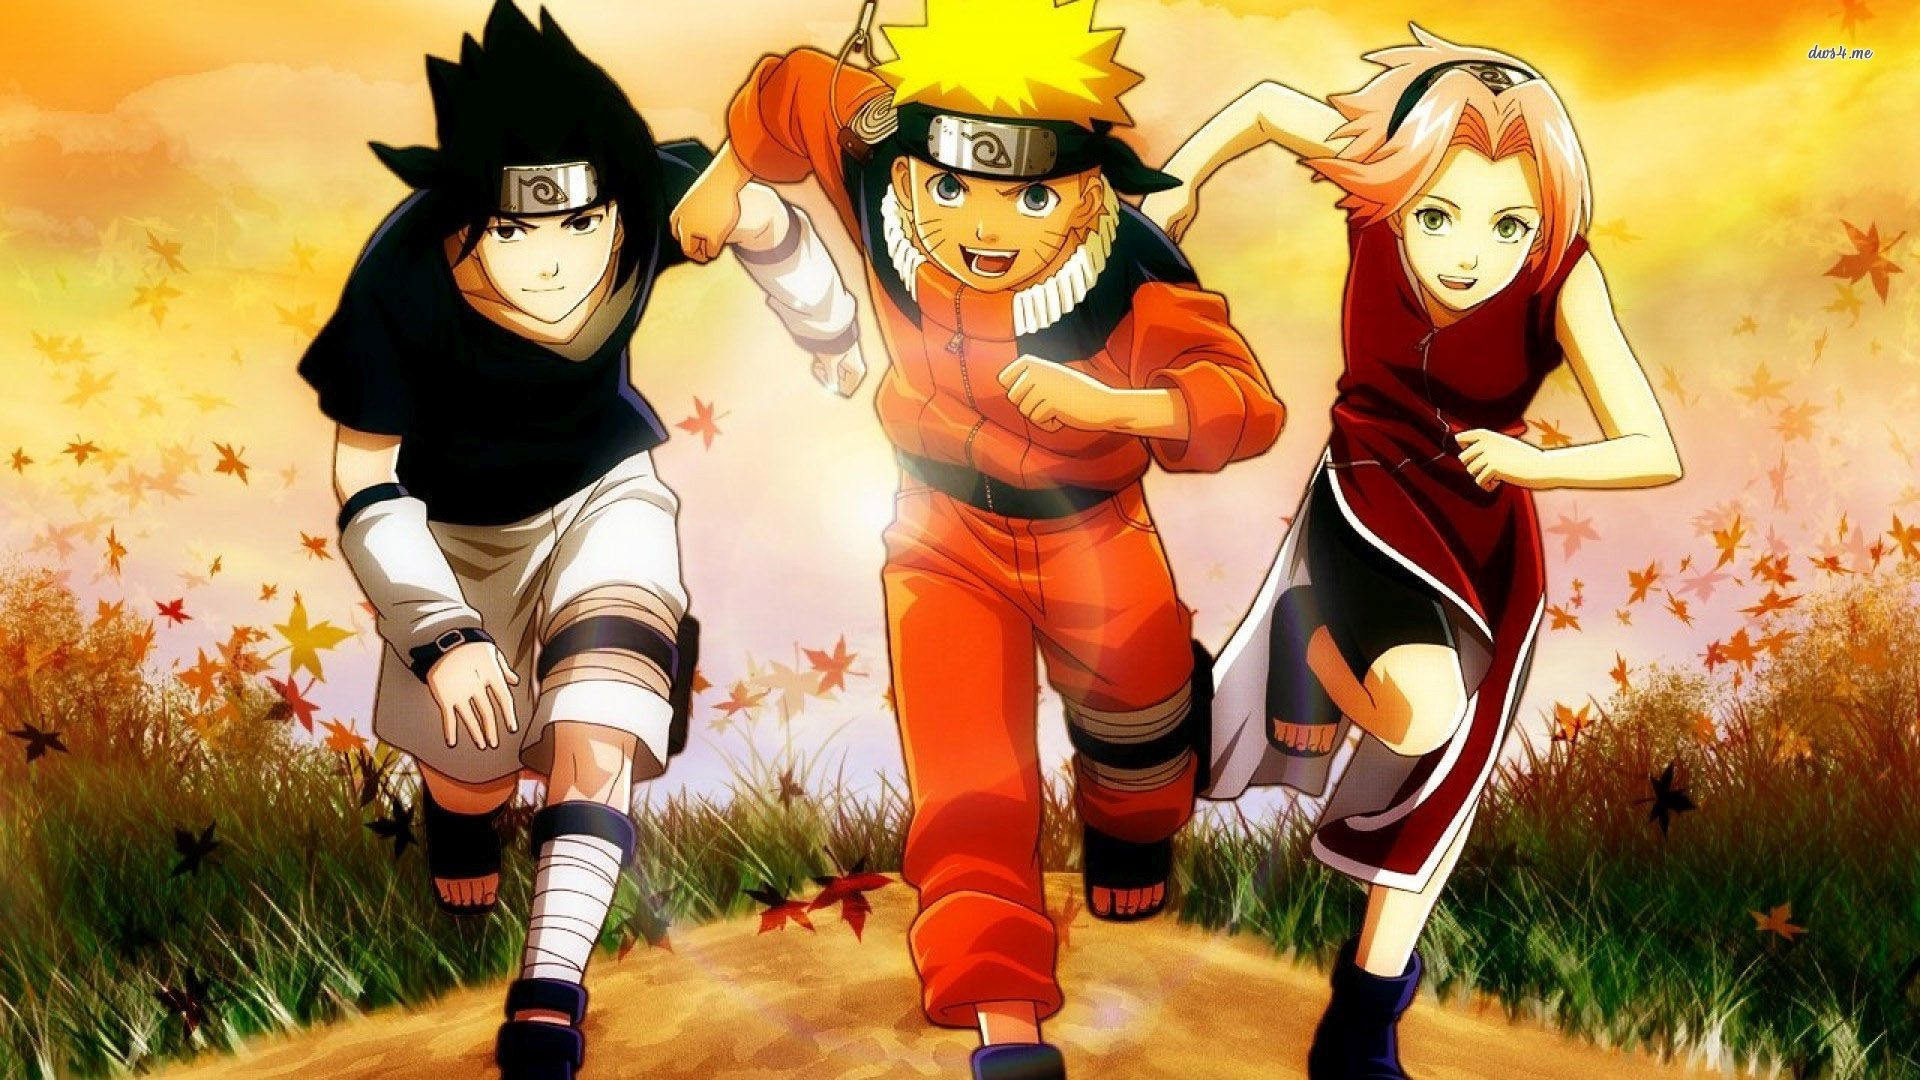 1920x1080 Full HD 1080p Naruto Wallpapers HD - HD Wallpapers